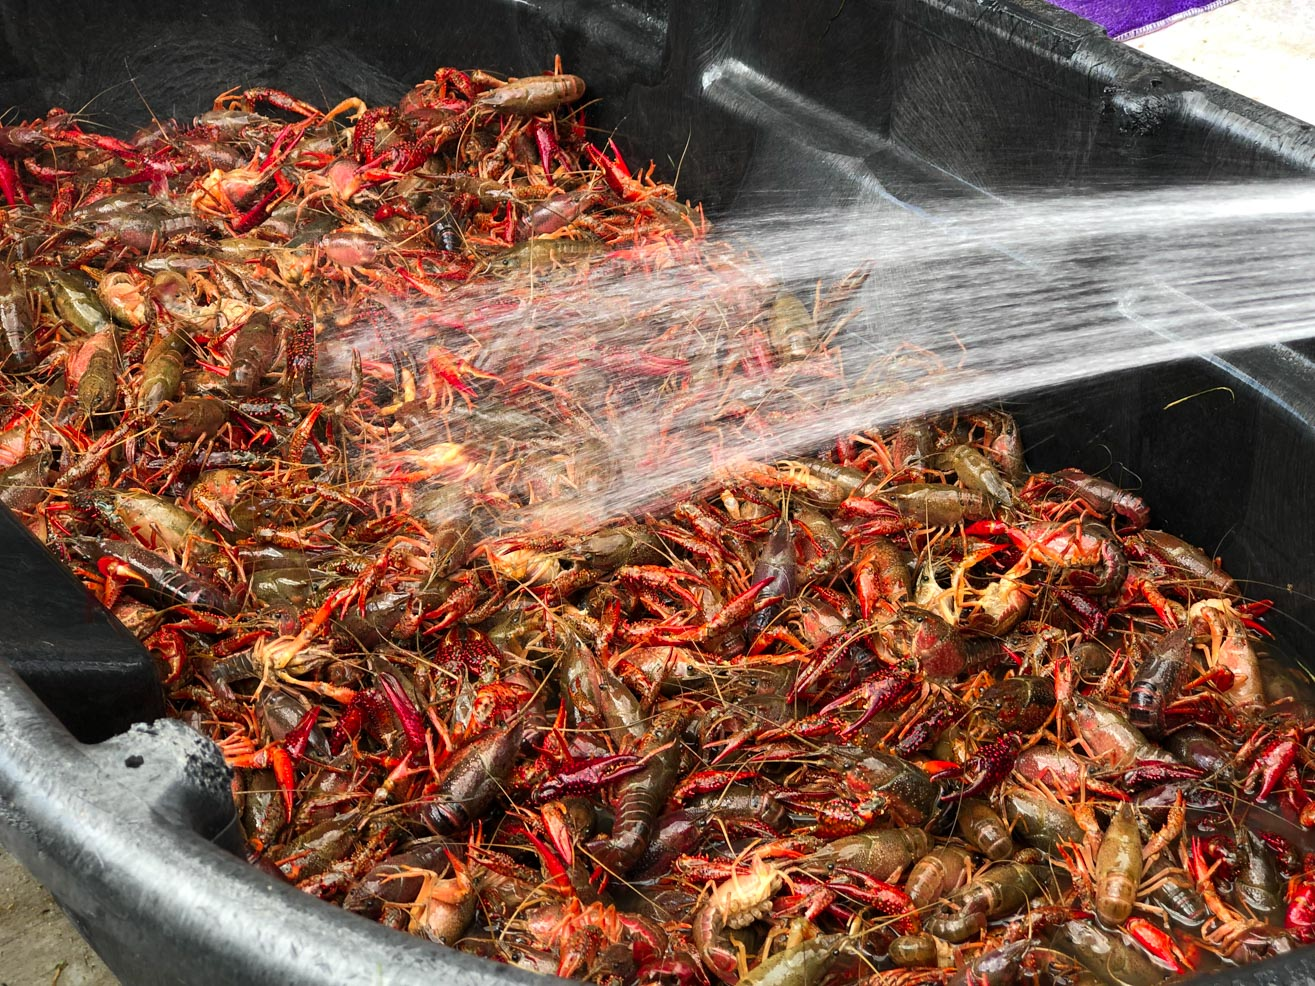 How to throw a crawfish boil - cleaning the crawfish